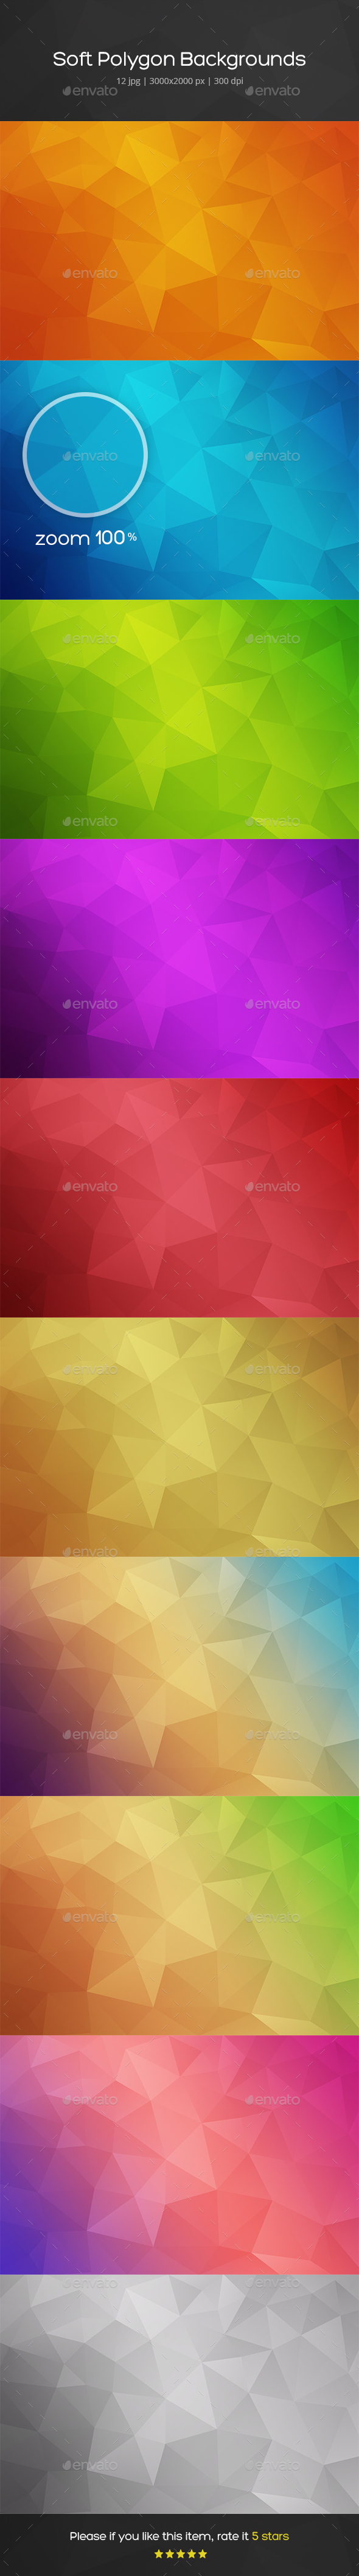 Soft Polygon Backgrounds - Backgrounds Graphics